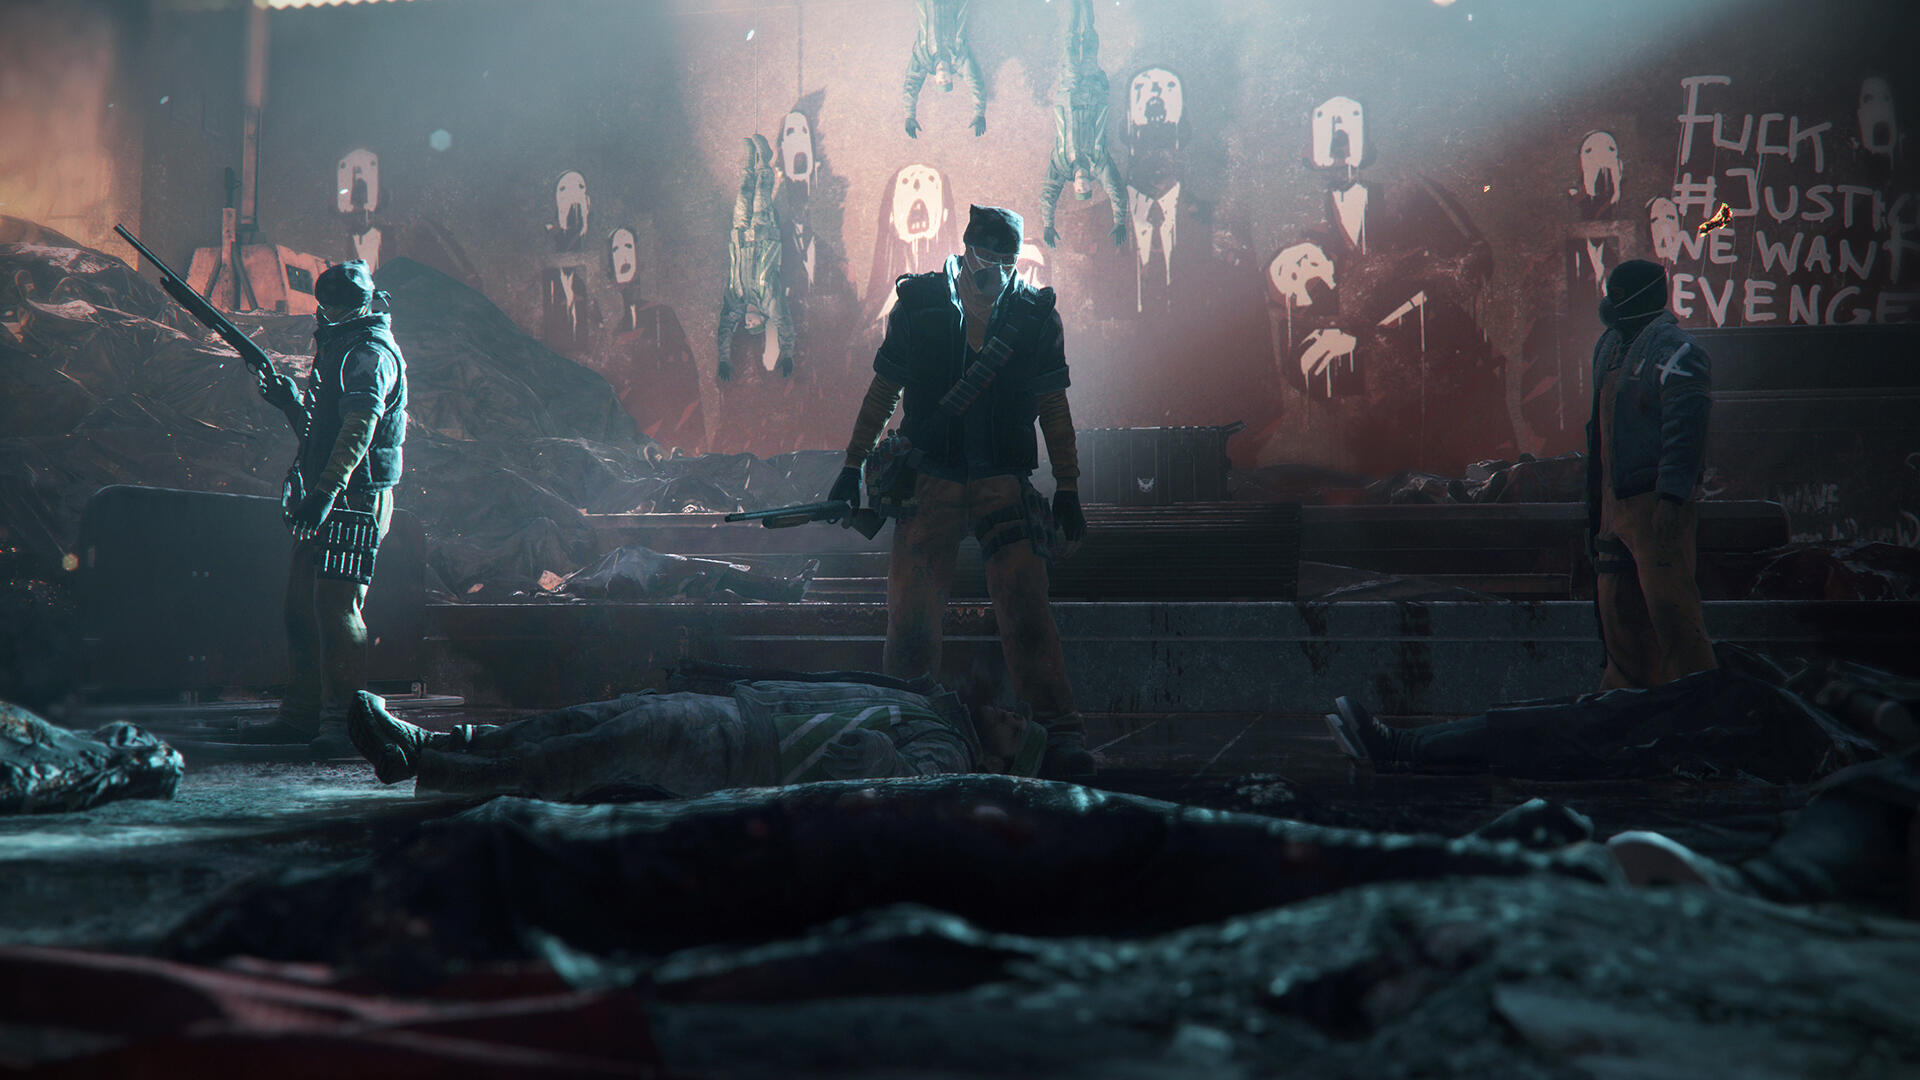 Tom Clancy's The Division Preview: Dystopian MMORPG Shooter